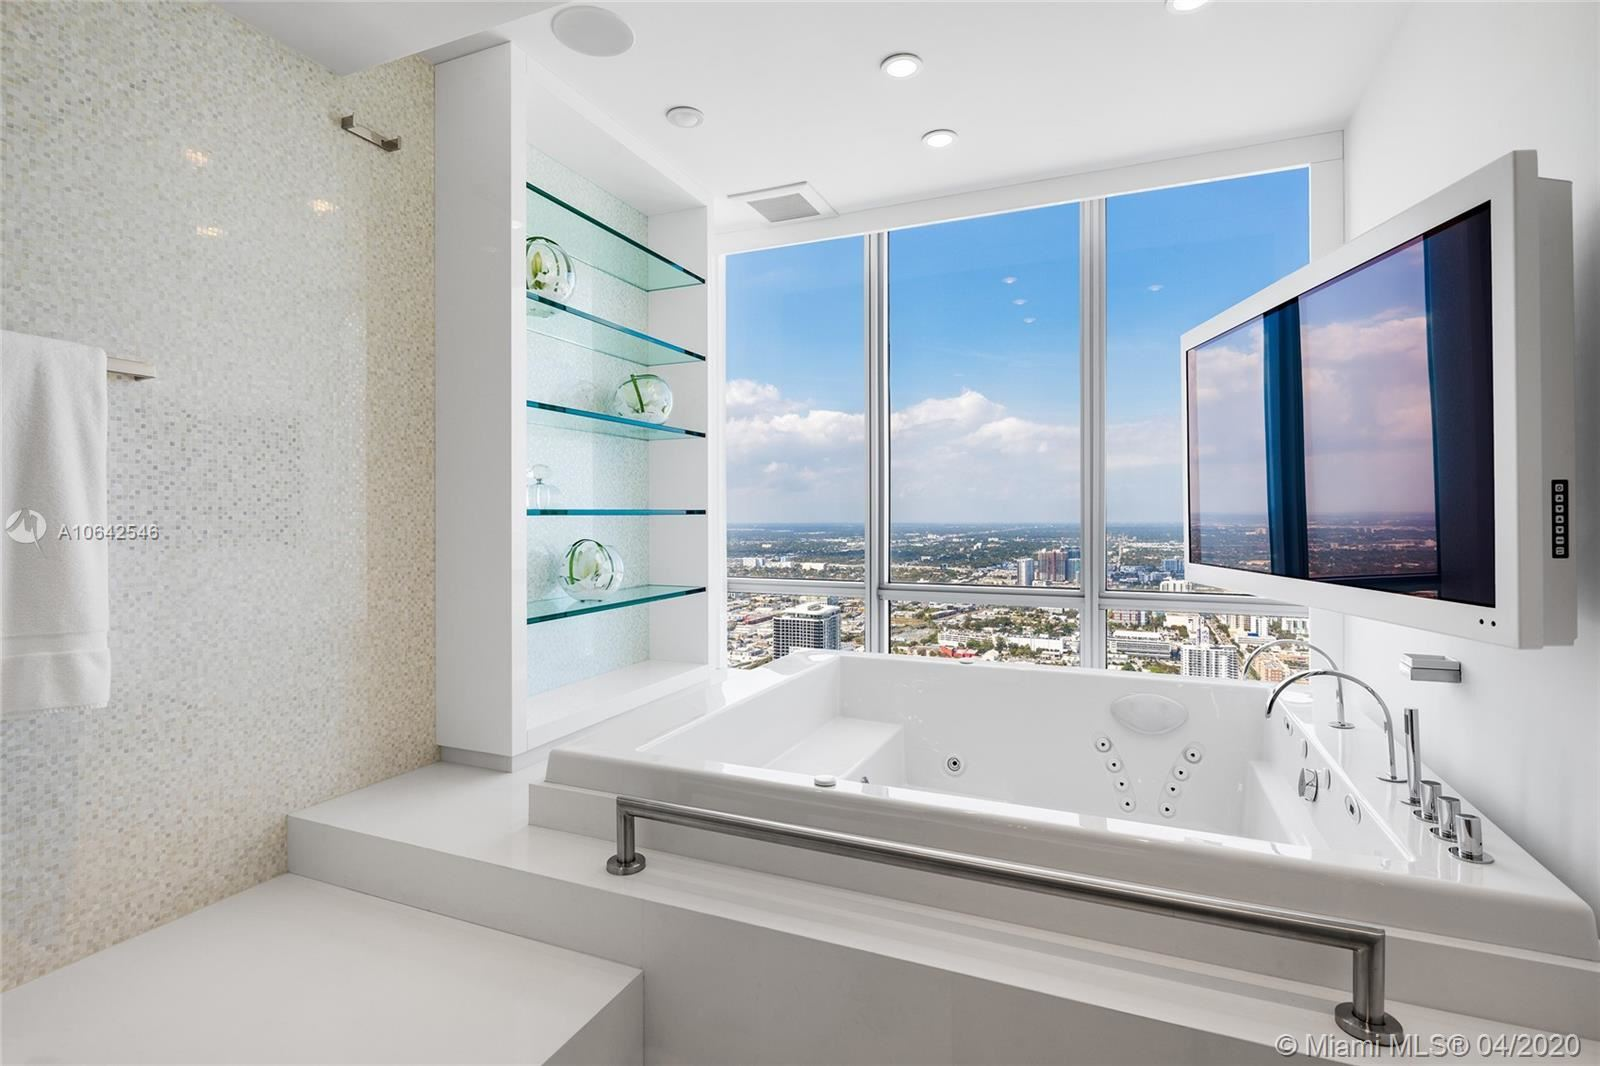 Photo 27 of Listing MLS a10642546 in 1100 Biscayne Blvd #6401 Miami FL 33132